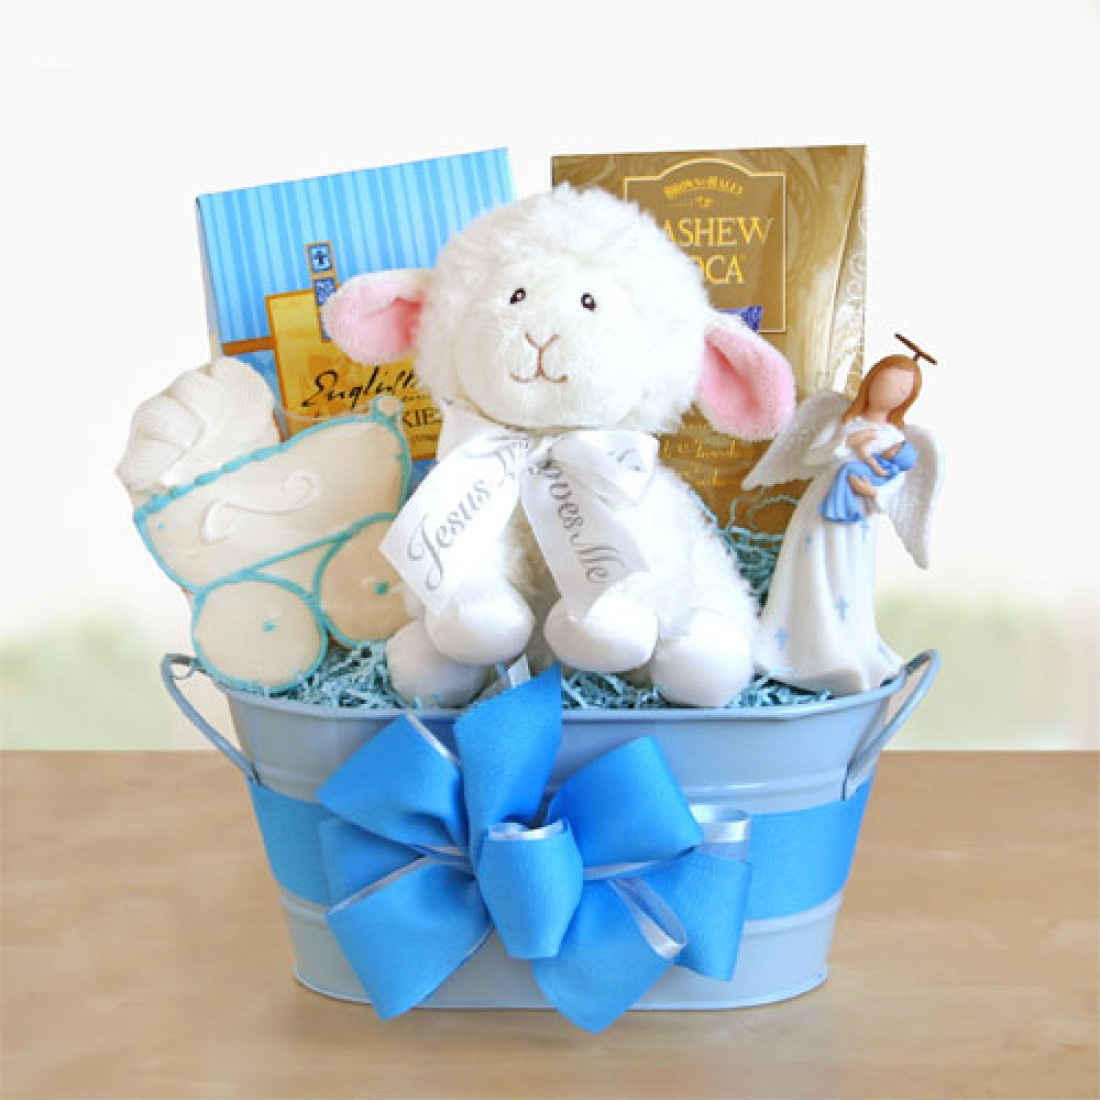 Best ideas about Baby Baptism Gift Ideas . Save or Pin Blue Boy Christening Gift Baskets Now.